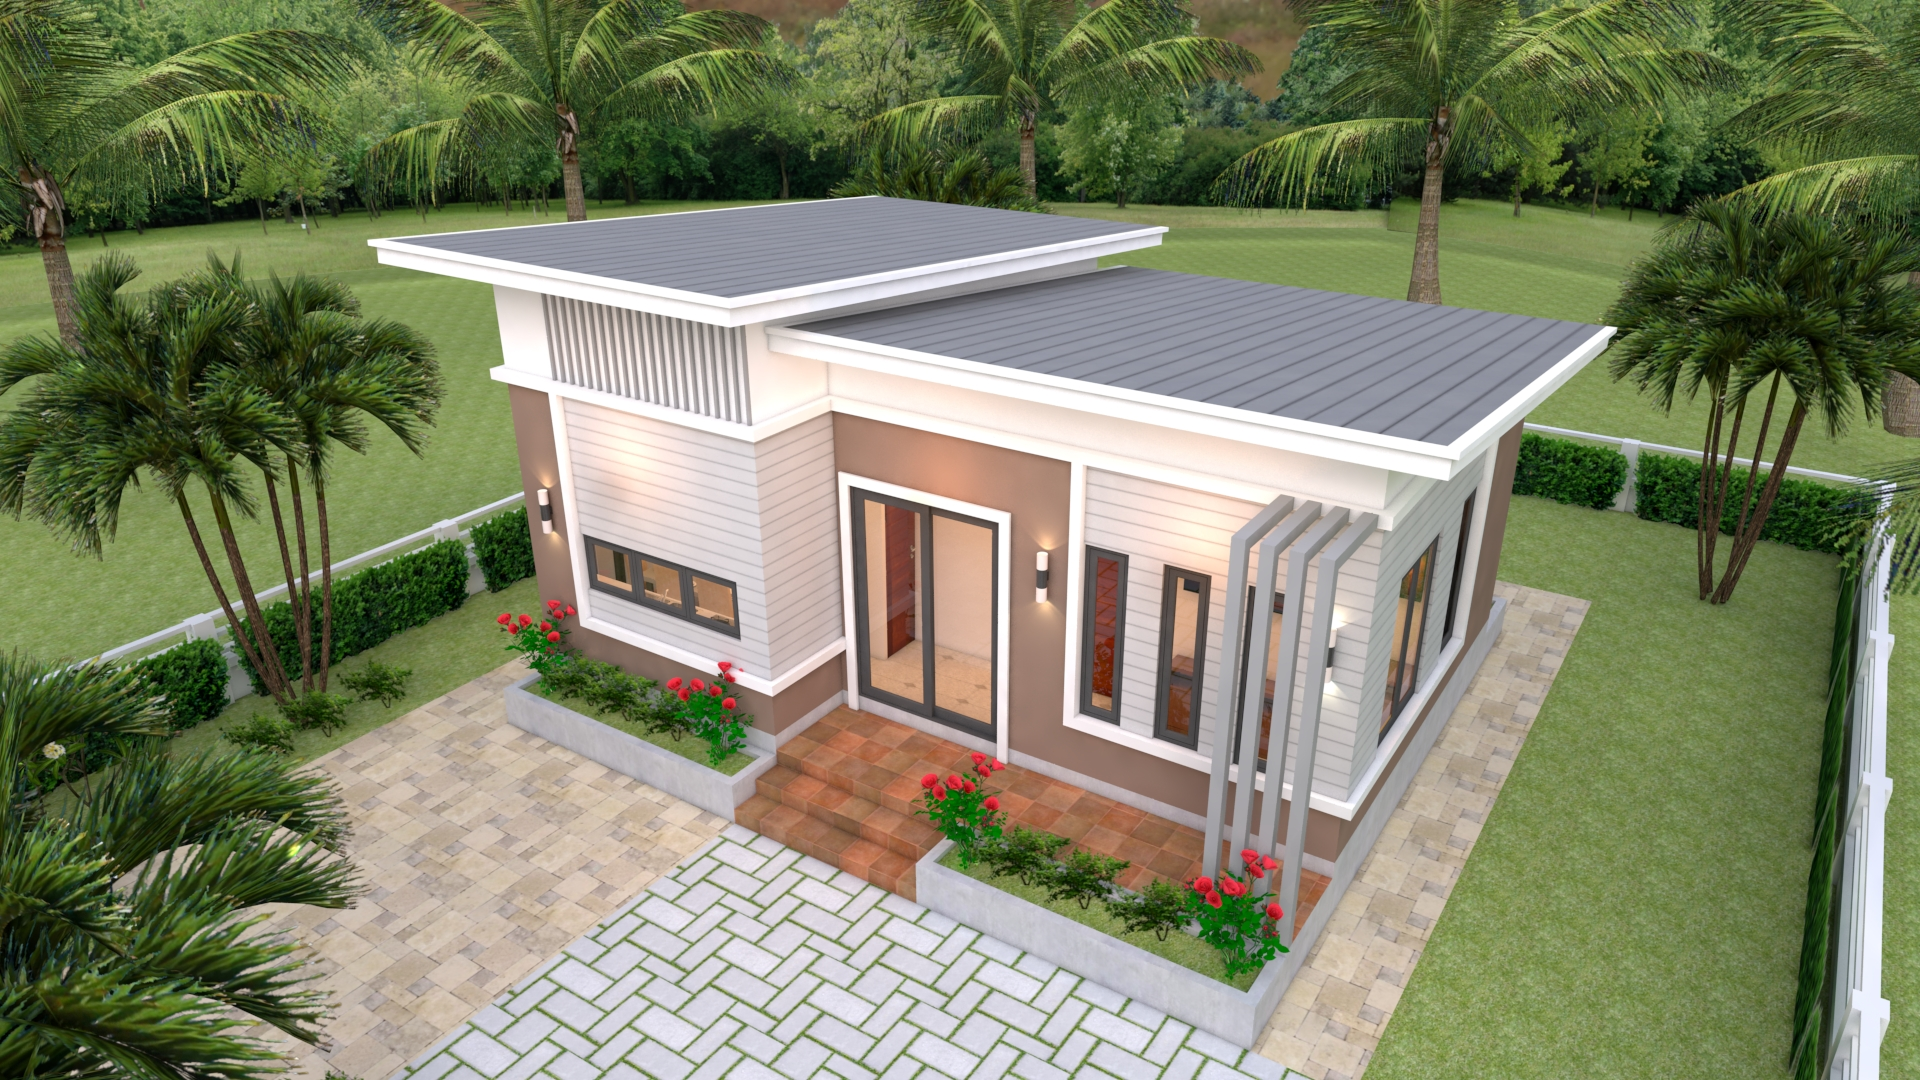 Tiny Home Layouts 8x6 Meter 26x20 Feet 2 Beds 4